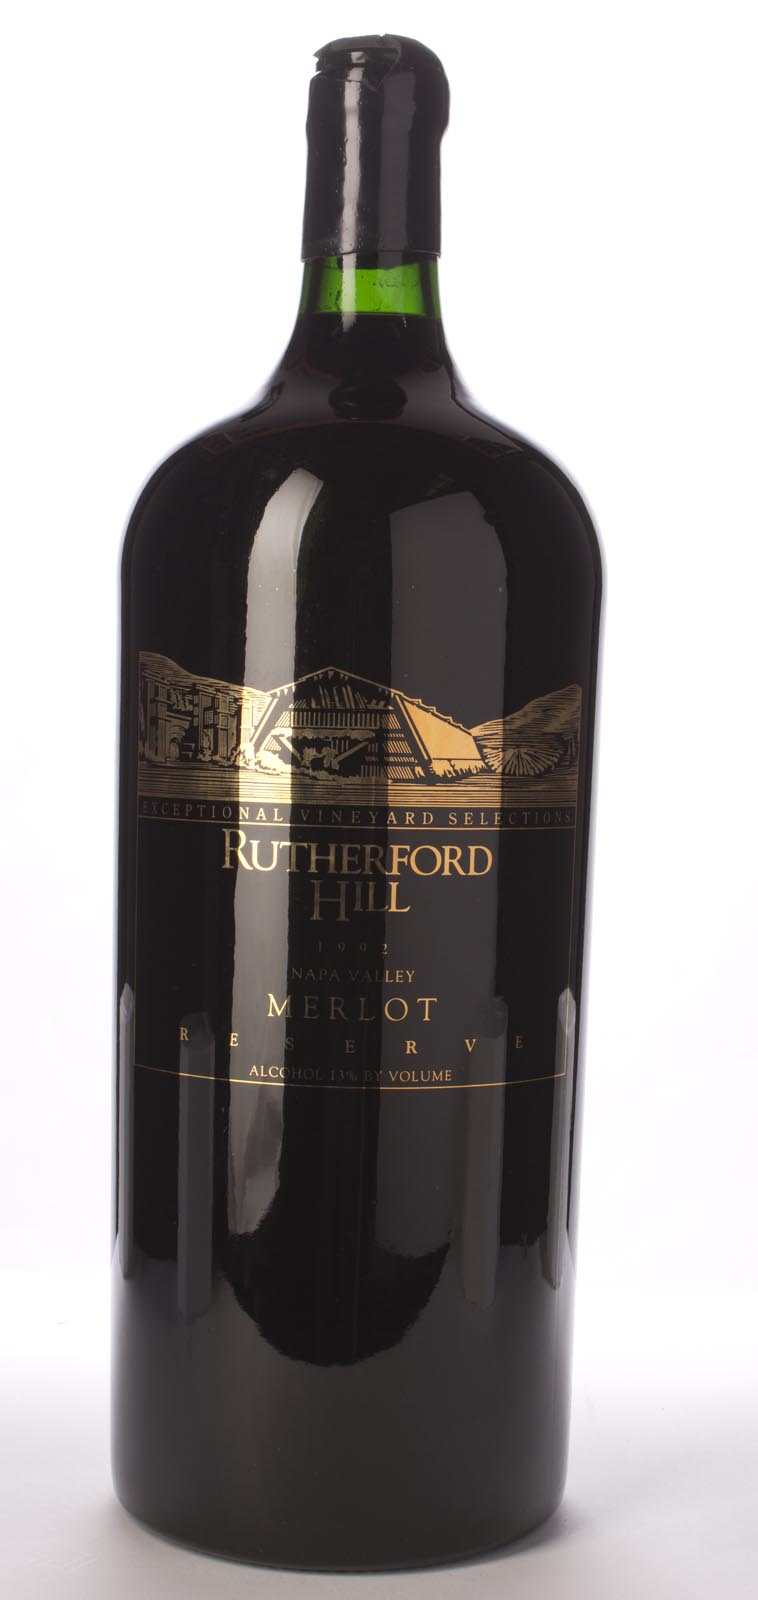 Rutherford Hill Merlot 1992, 6L () from The BPW - Merchants of rare and fine wines.